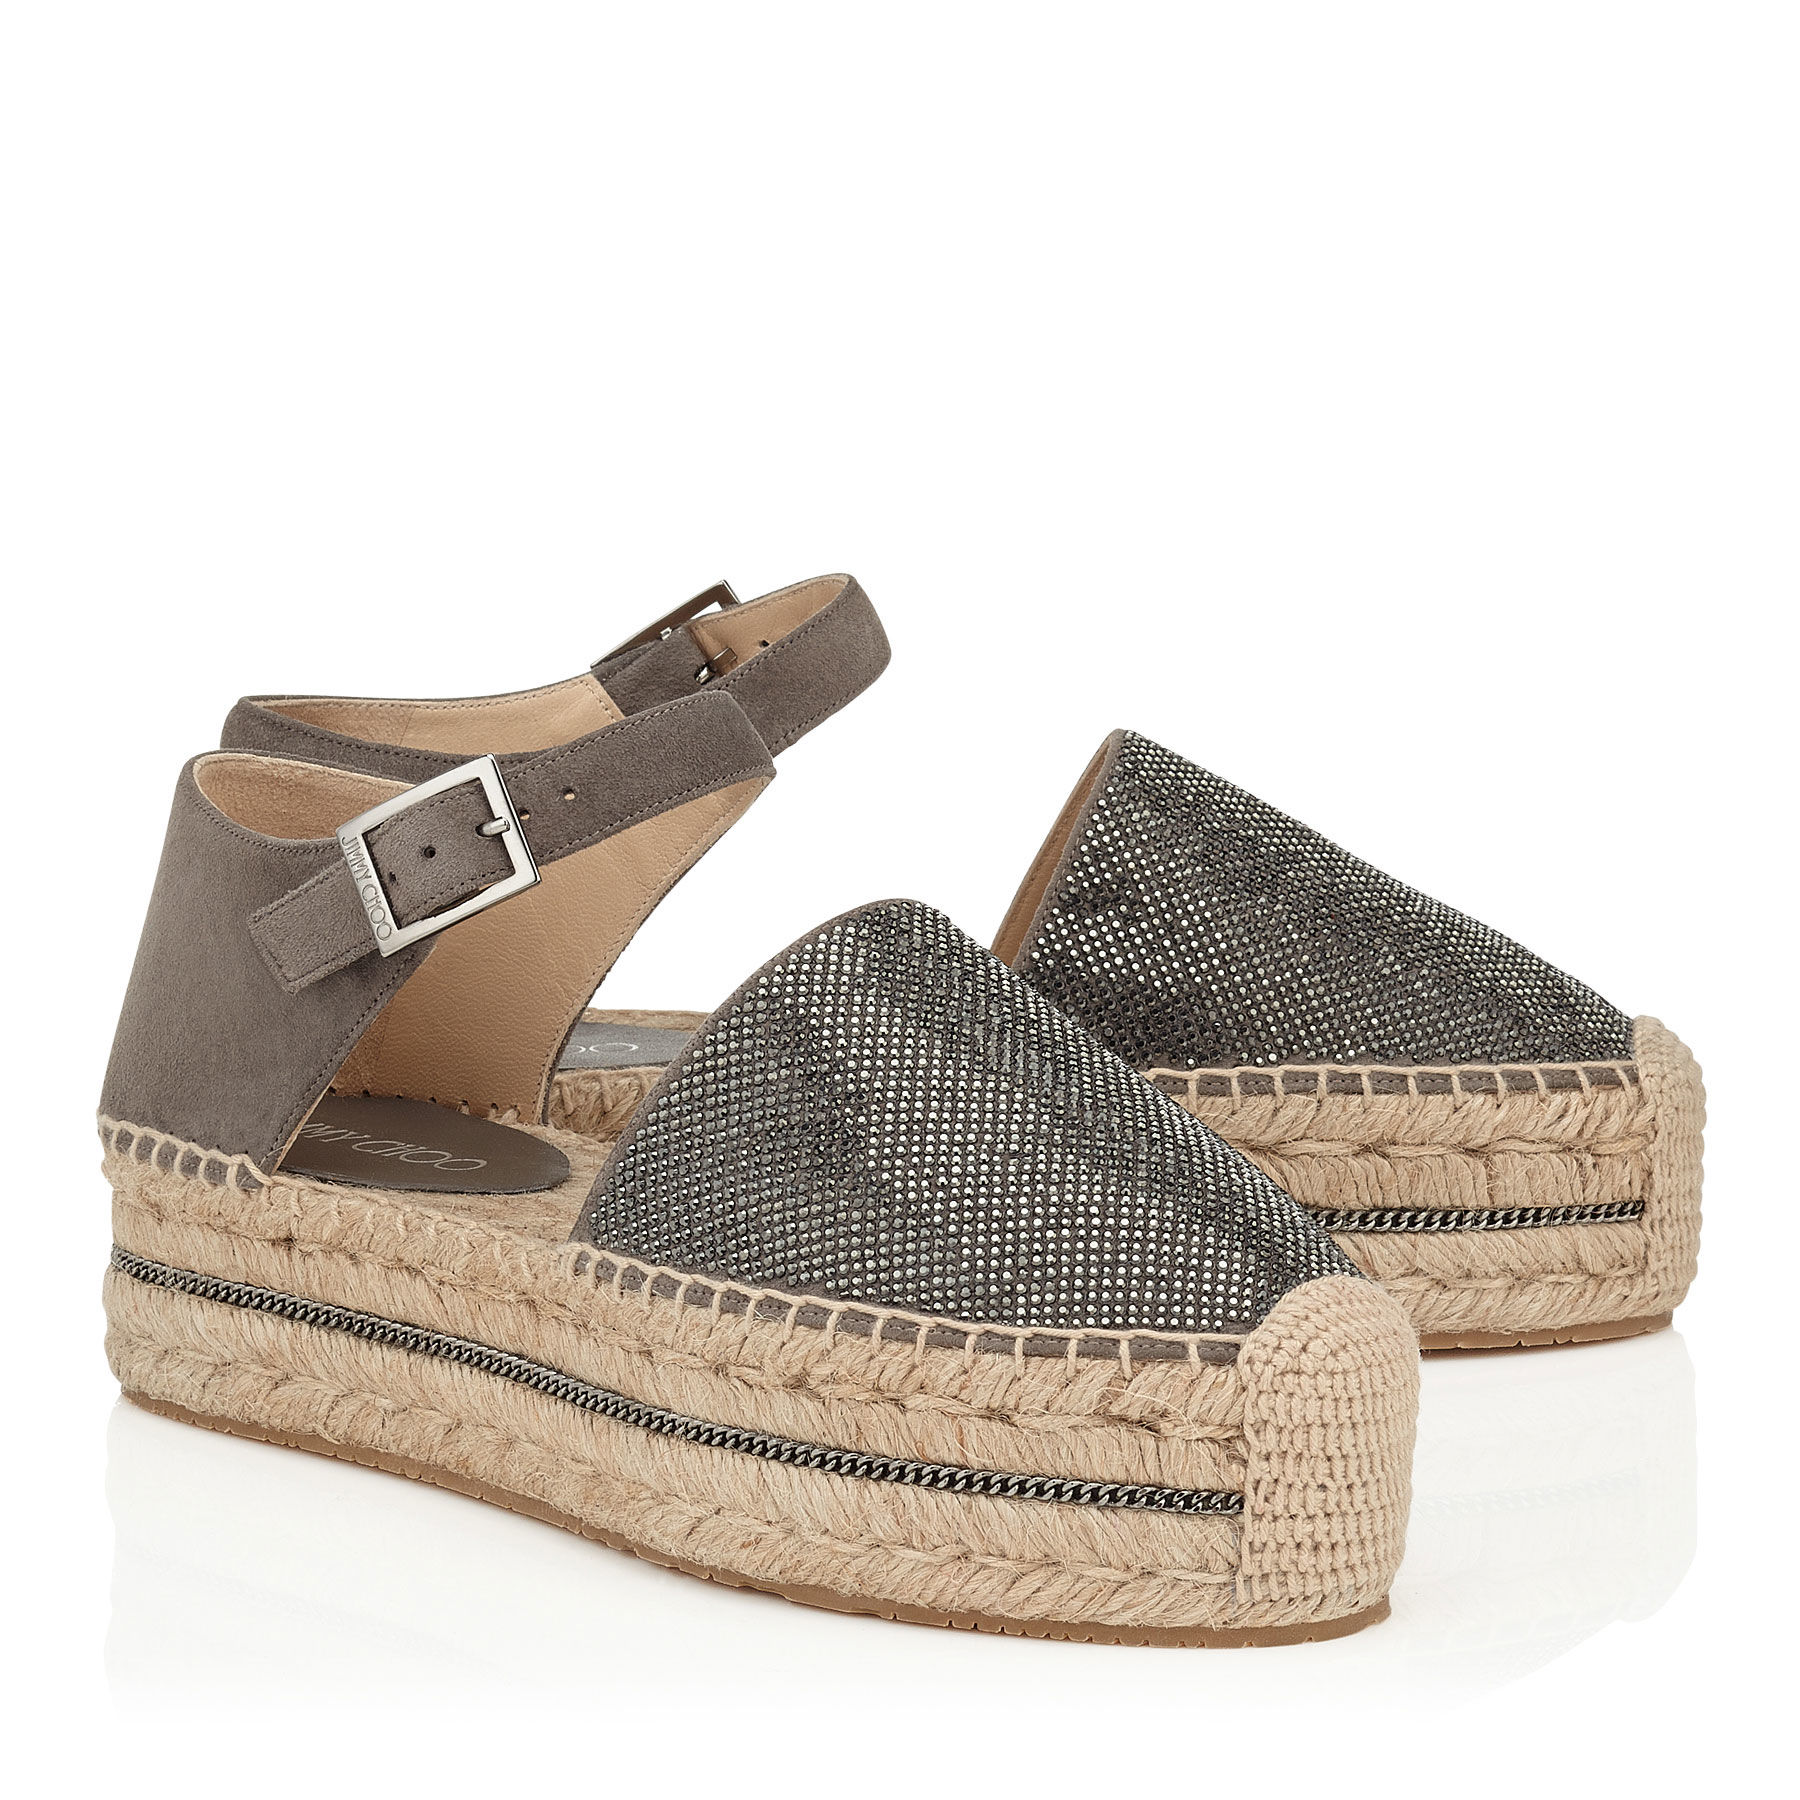 Find a great selection of women's espadrilles at lemkecollier.ga by Soludos, Tory Burch, Sam Edelman and more. Shop for espadrille flats, espadrille wedges, .